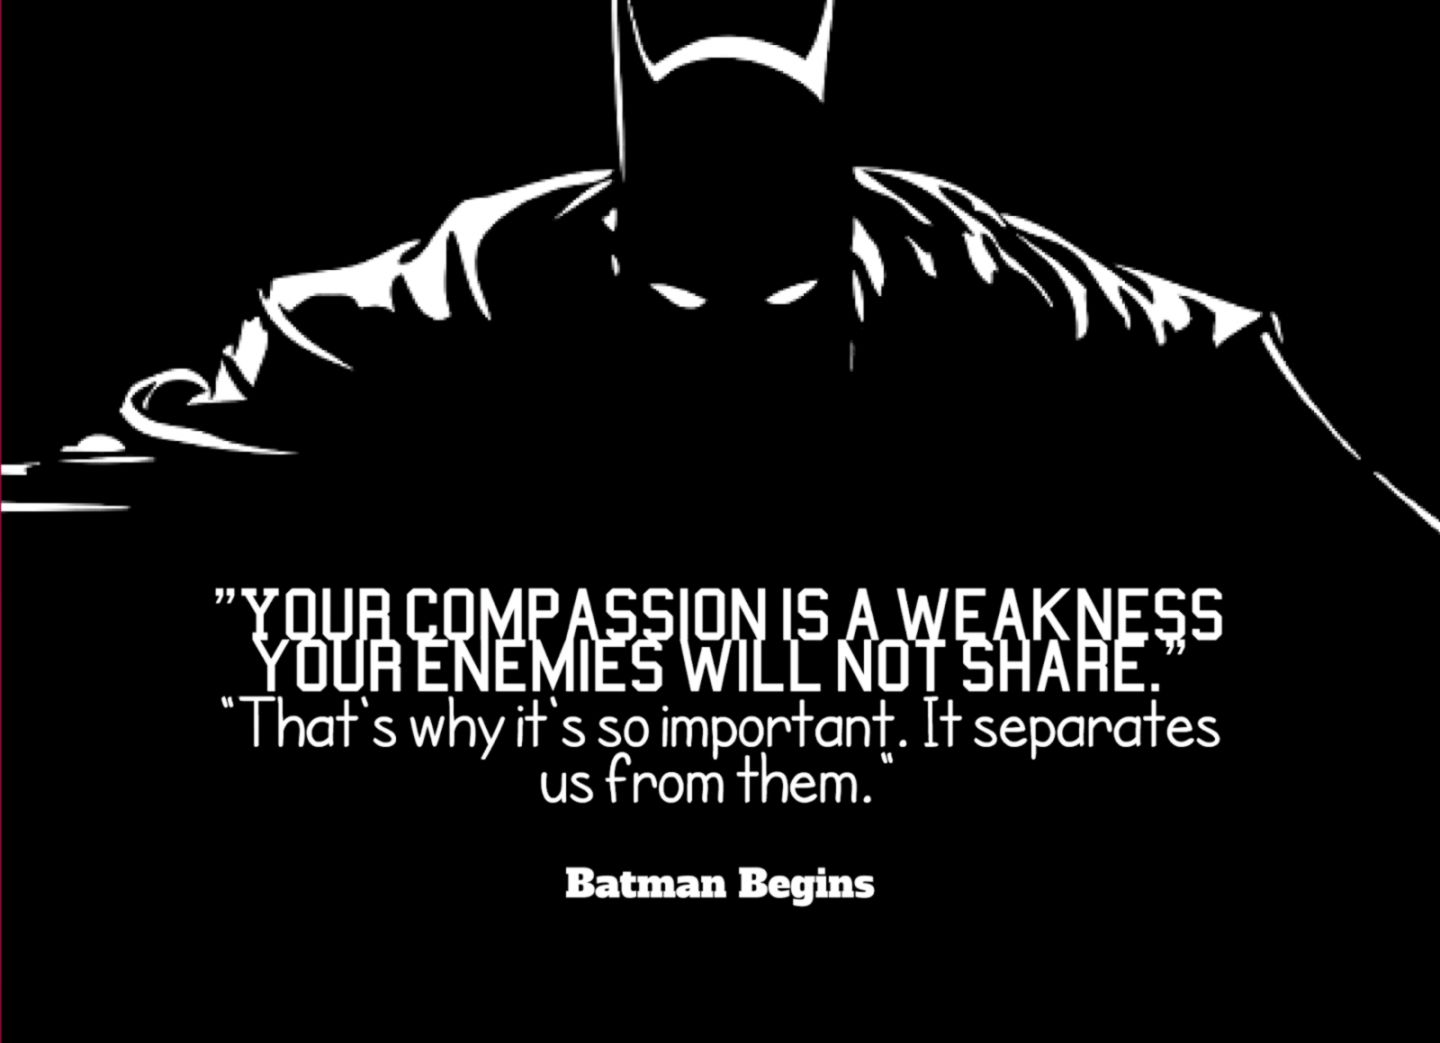 Your compassion is a weakness your enemies will not share. That's why it's so important. It separates us from them.[1440 x 1043]